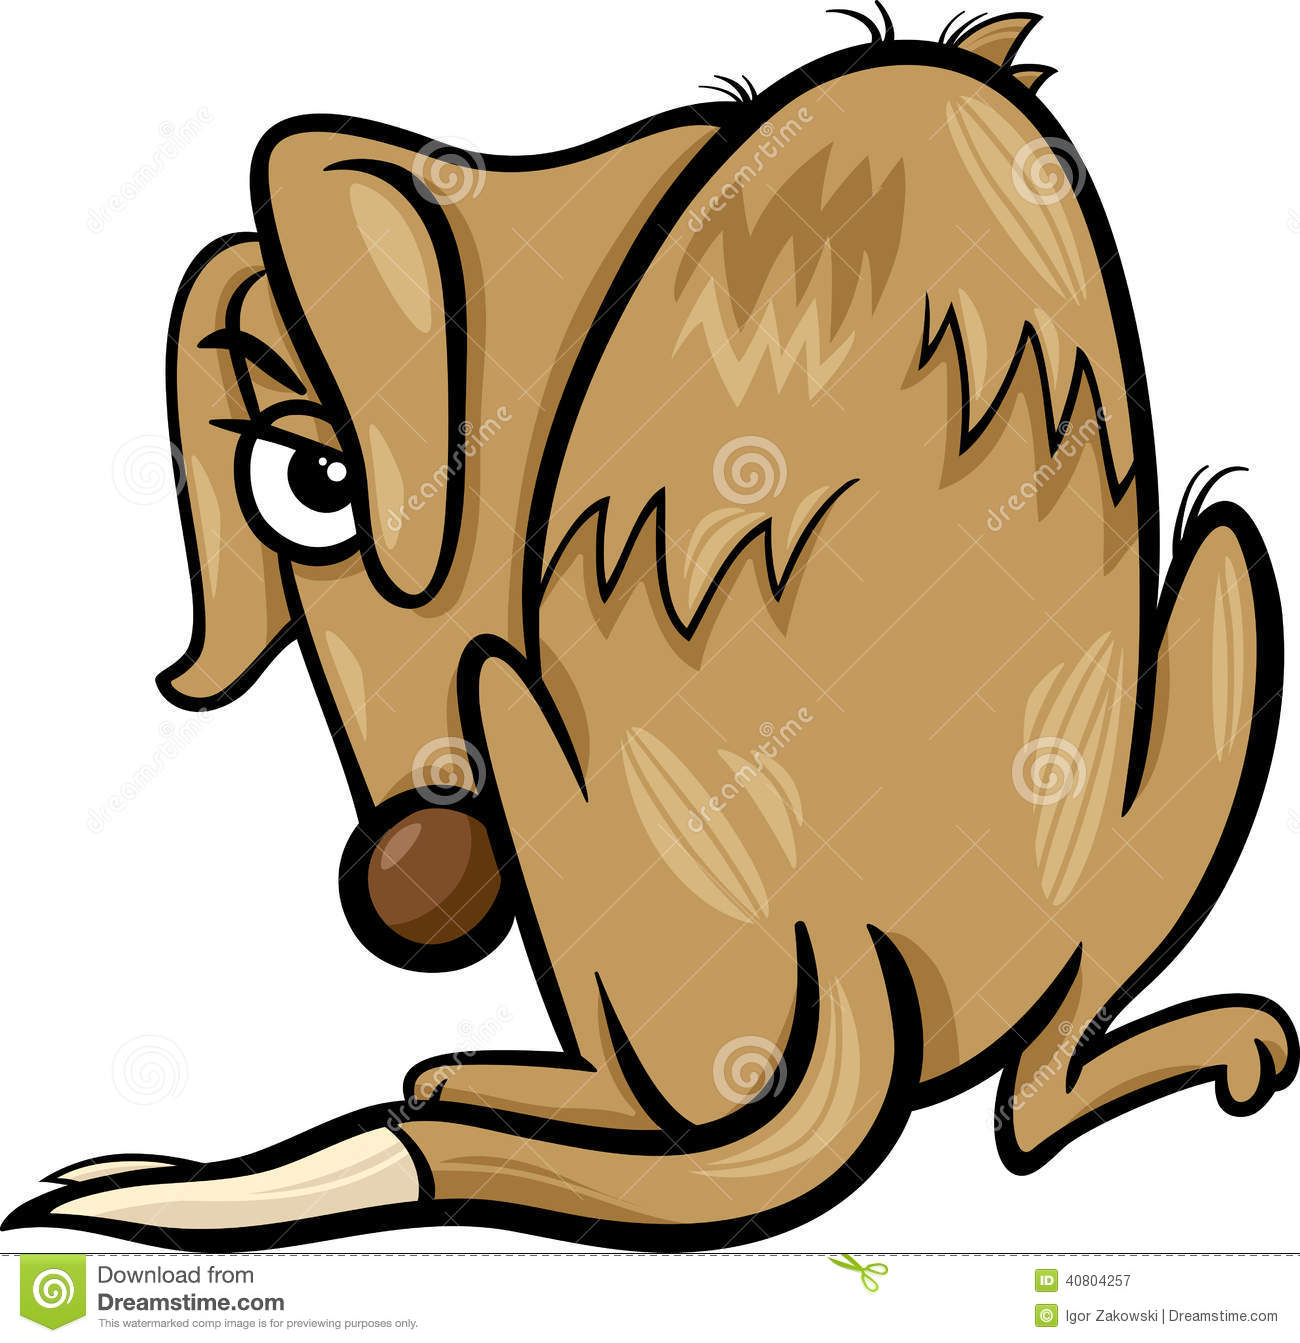 poor homeless dog cartoon illustration stock vector illustration rh dreamstime com sad dog cartoon story sad dog cartoon droopy